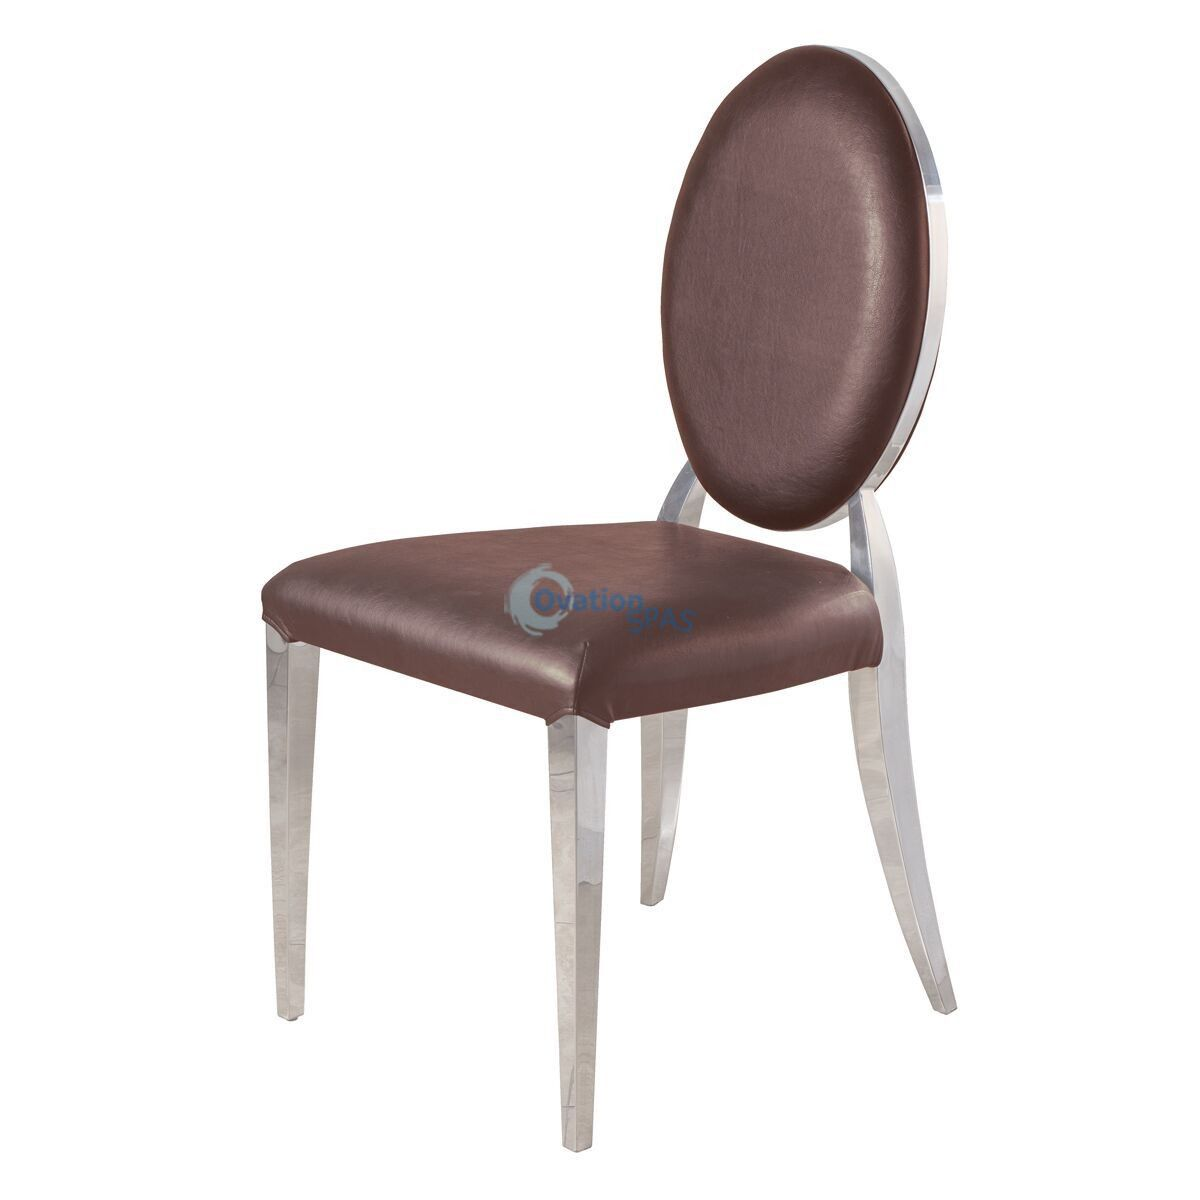 Waiting Chair 8030 - Chocolate